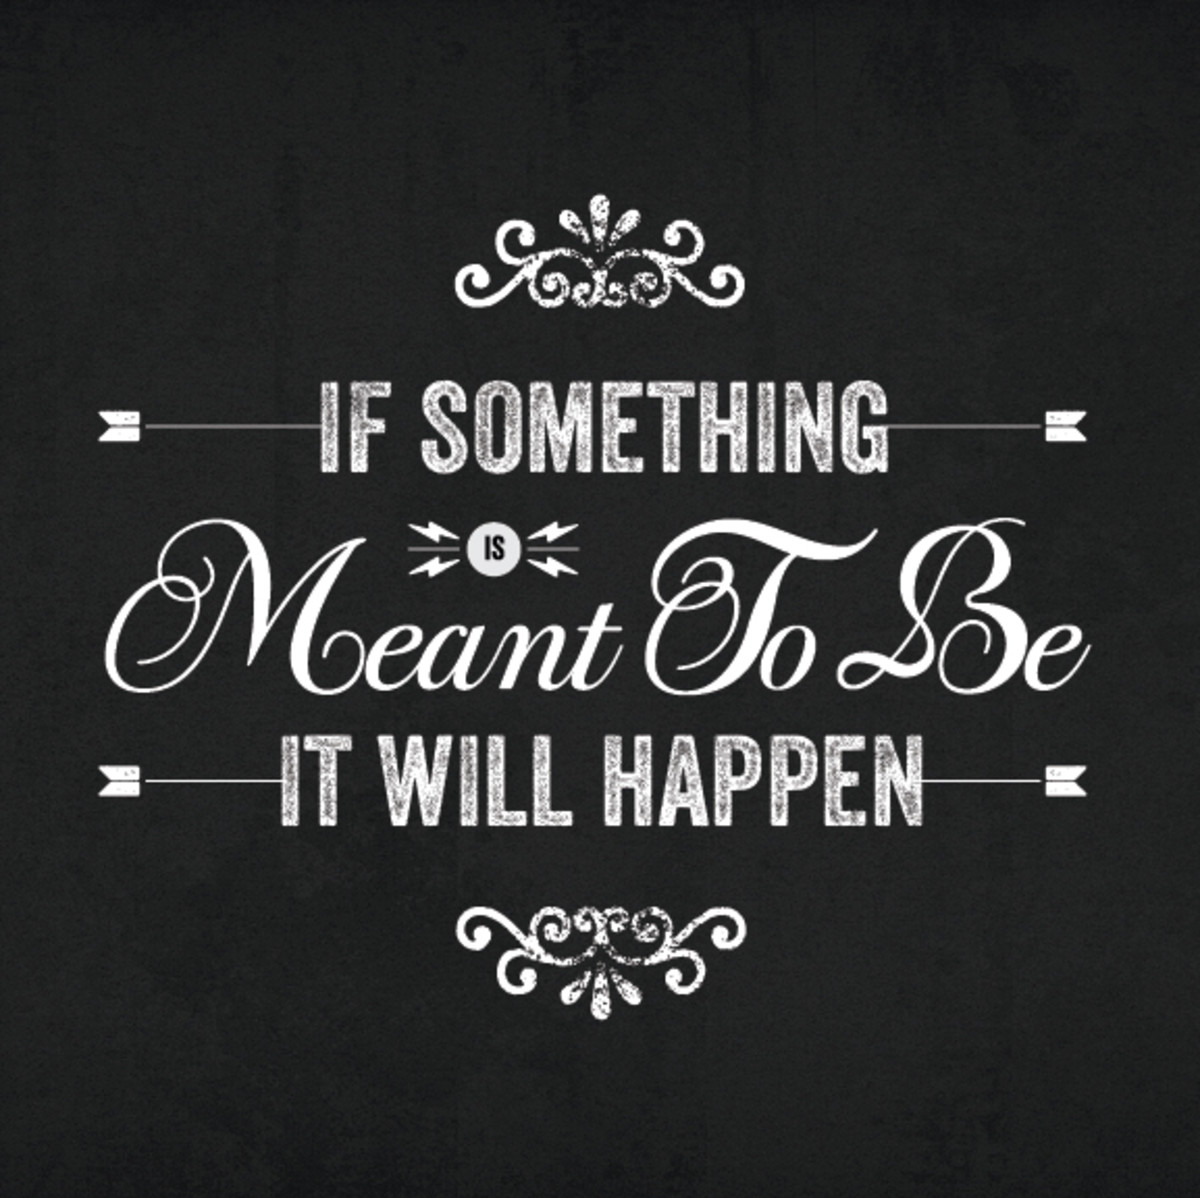 It will happen if it is meant to be you just have to be patient and work for it